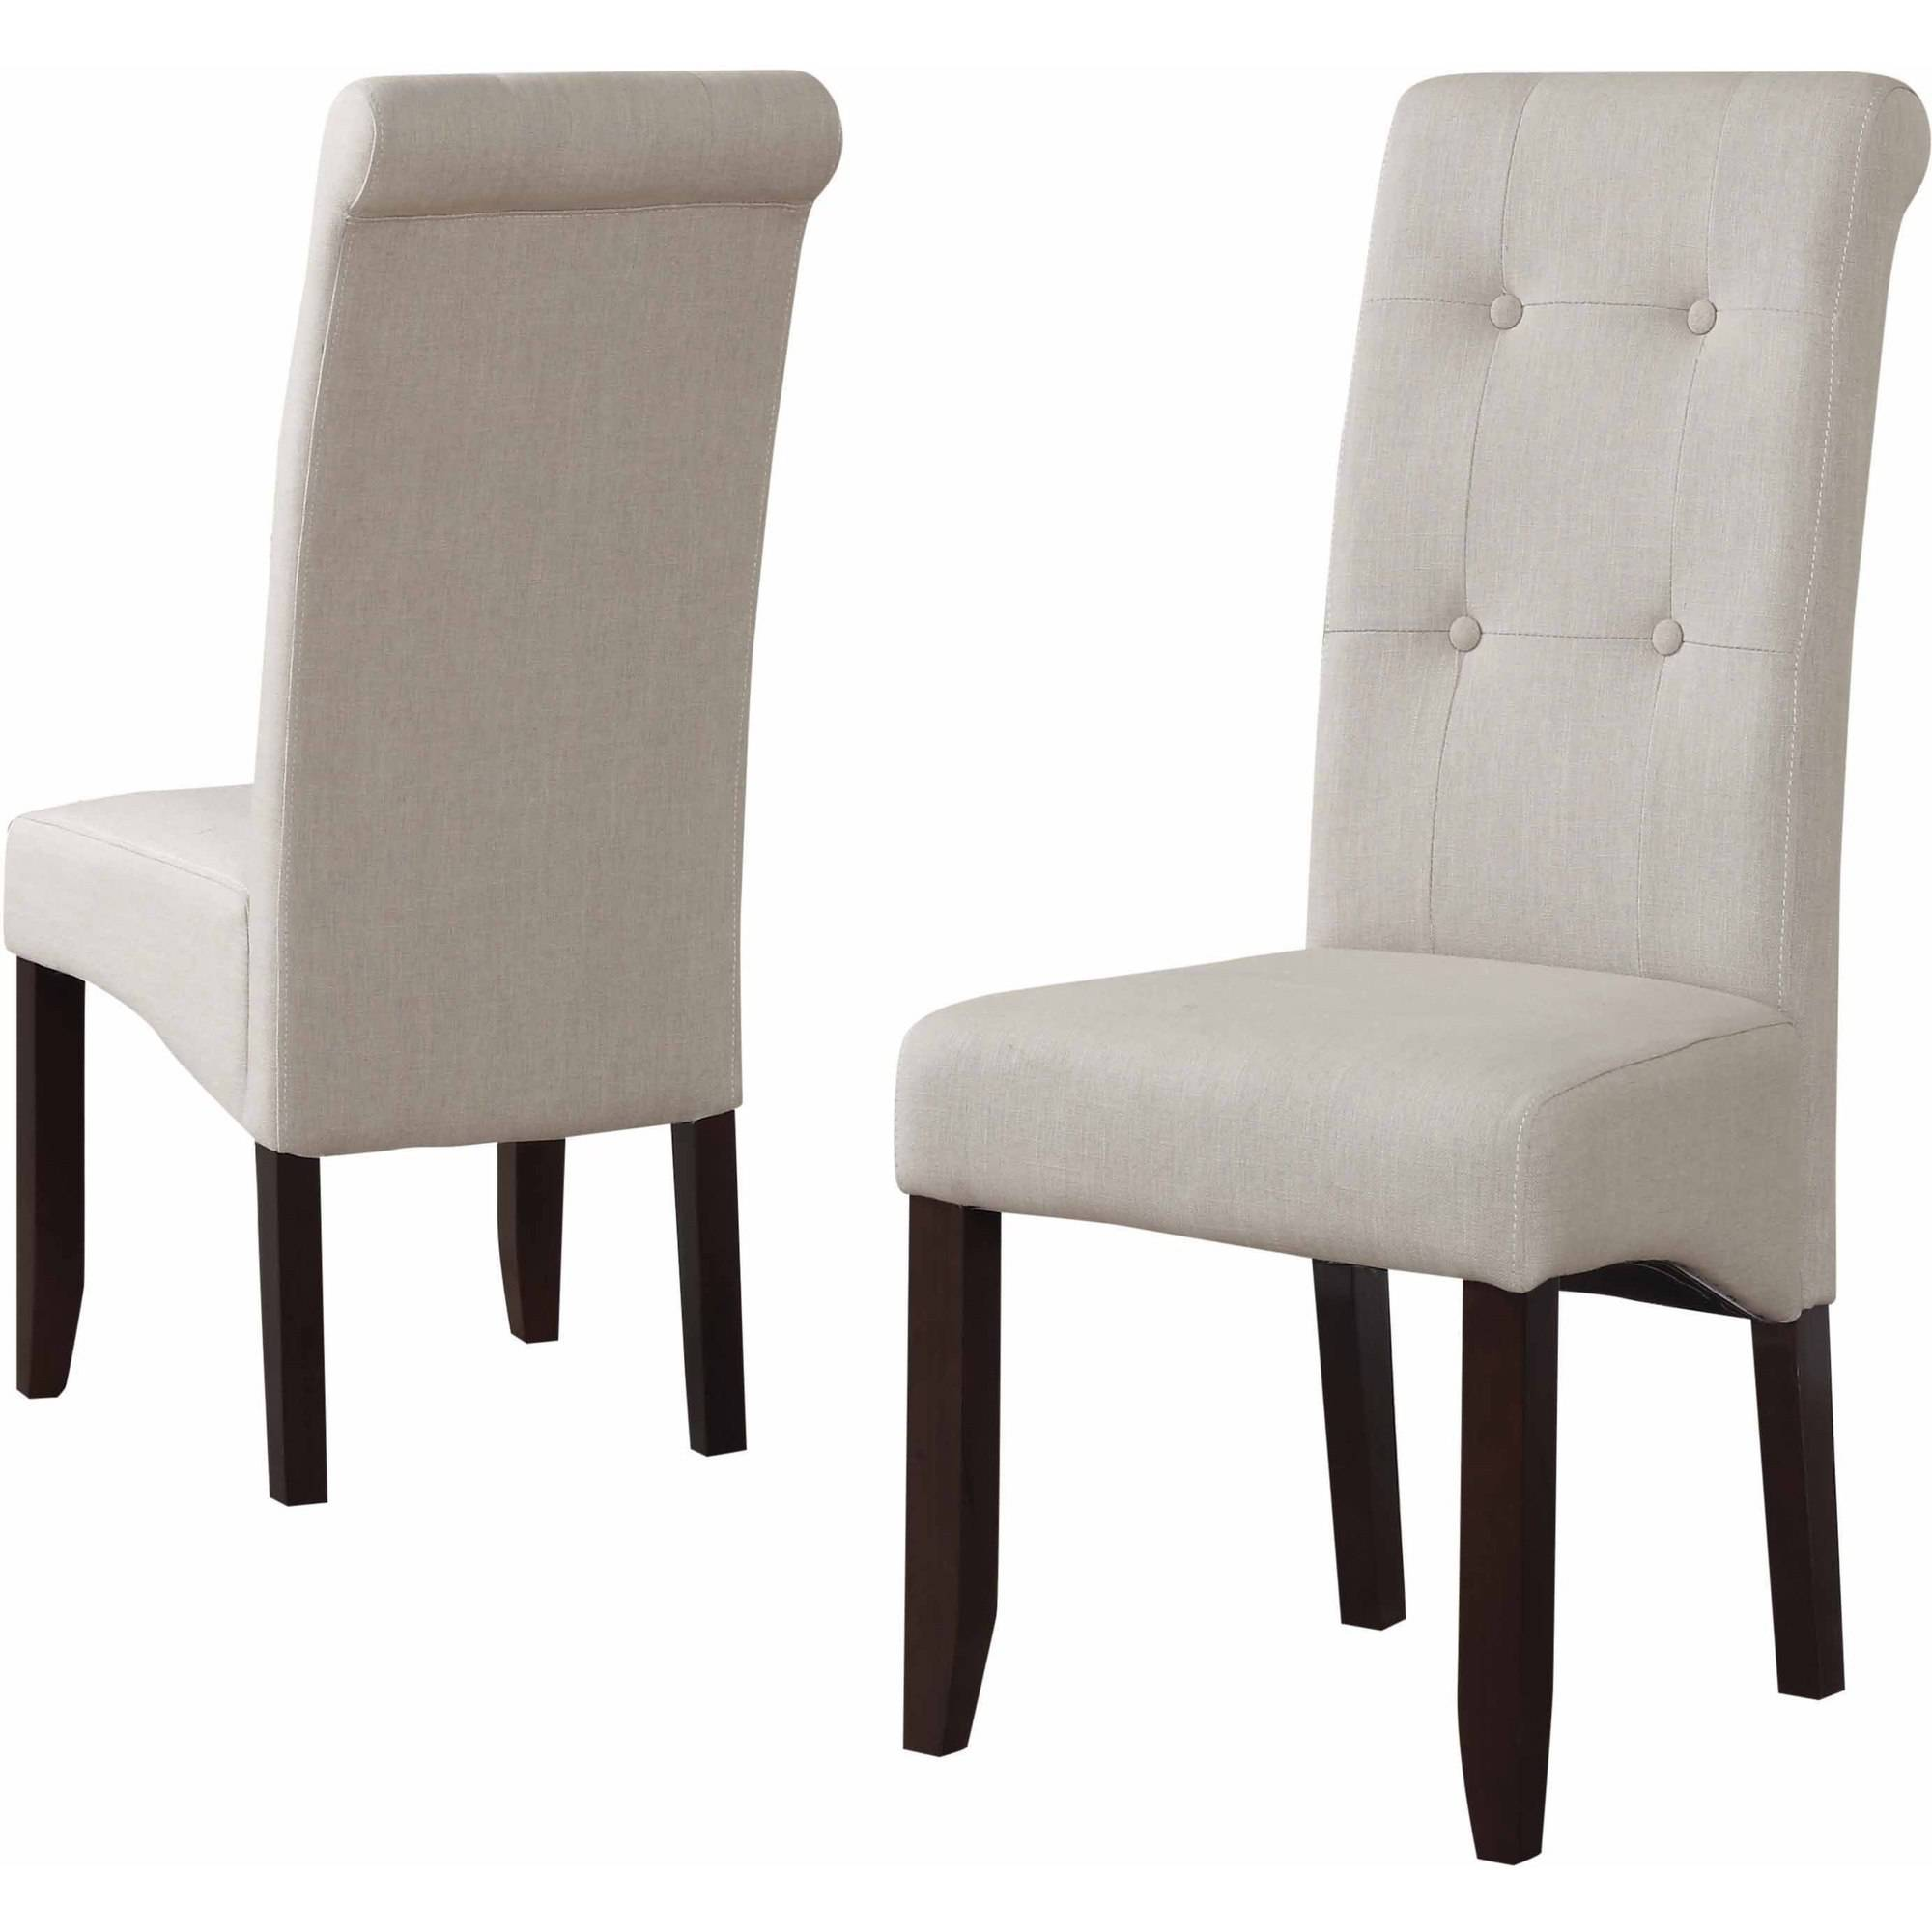 Brooklyn + Max City Deluxe Tufted Parson Chairs, Set of 2